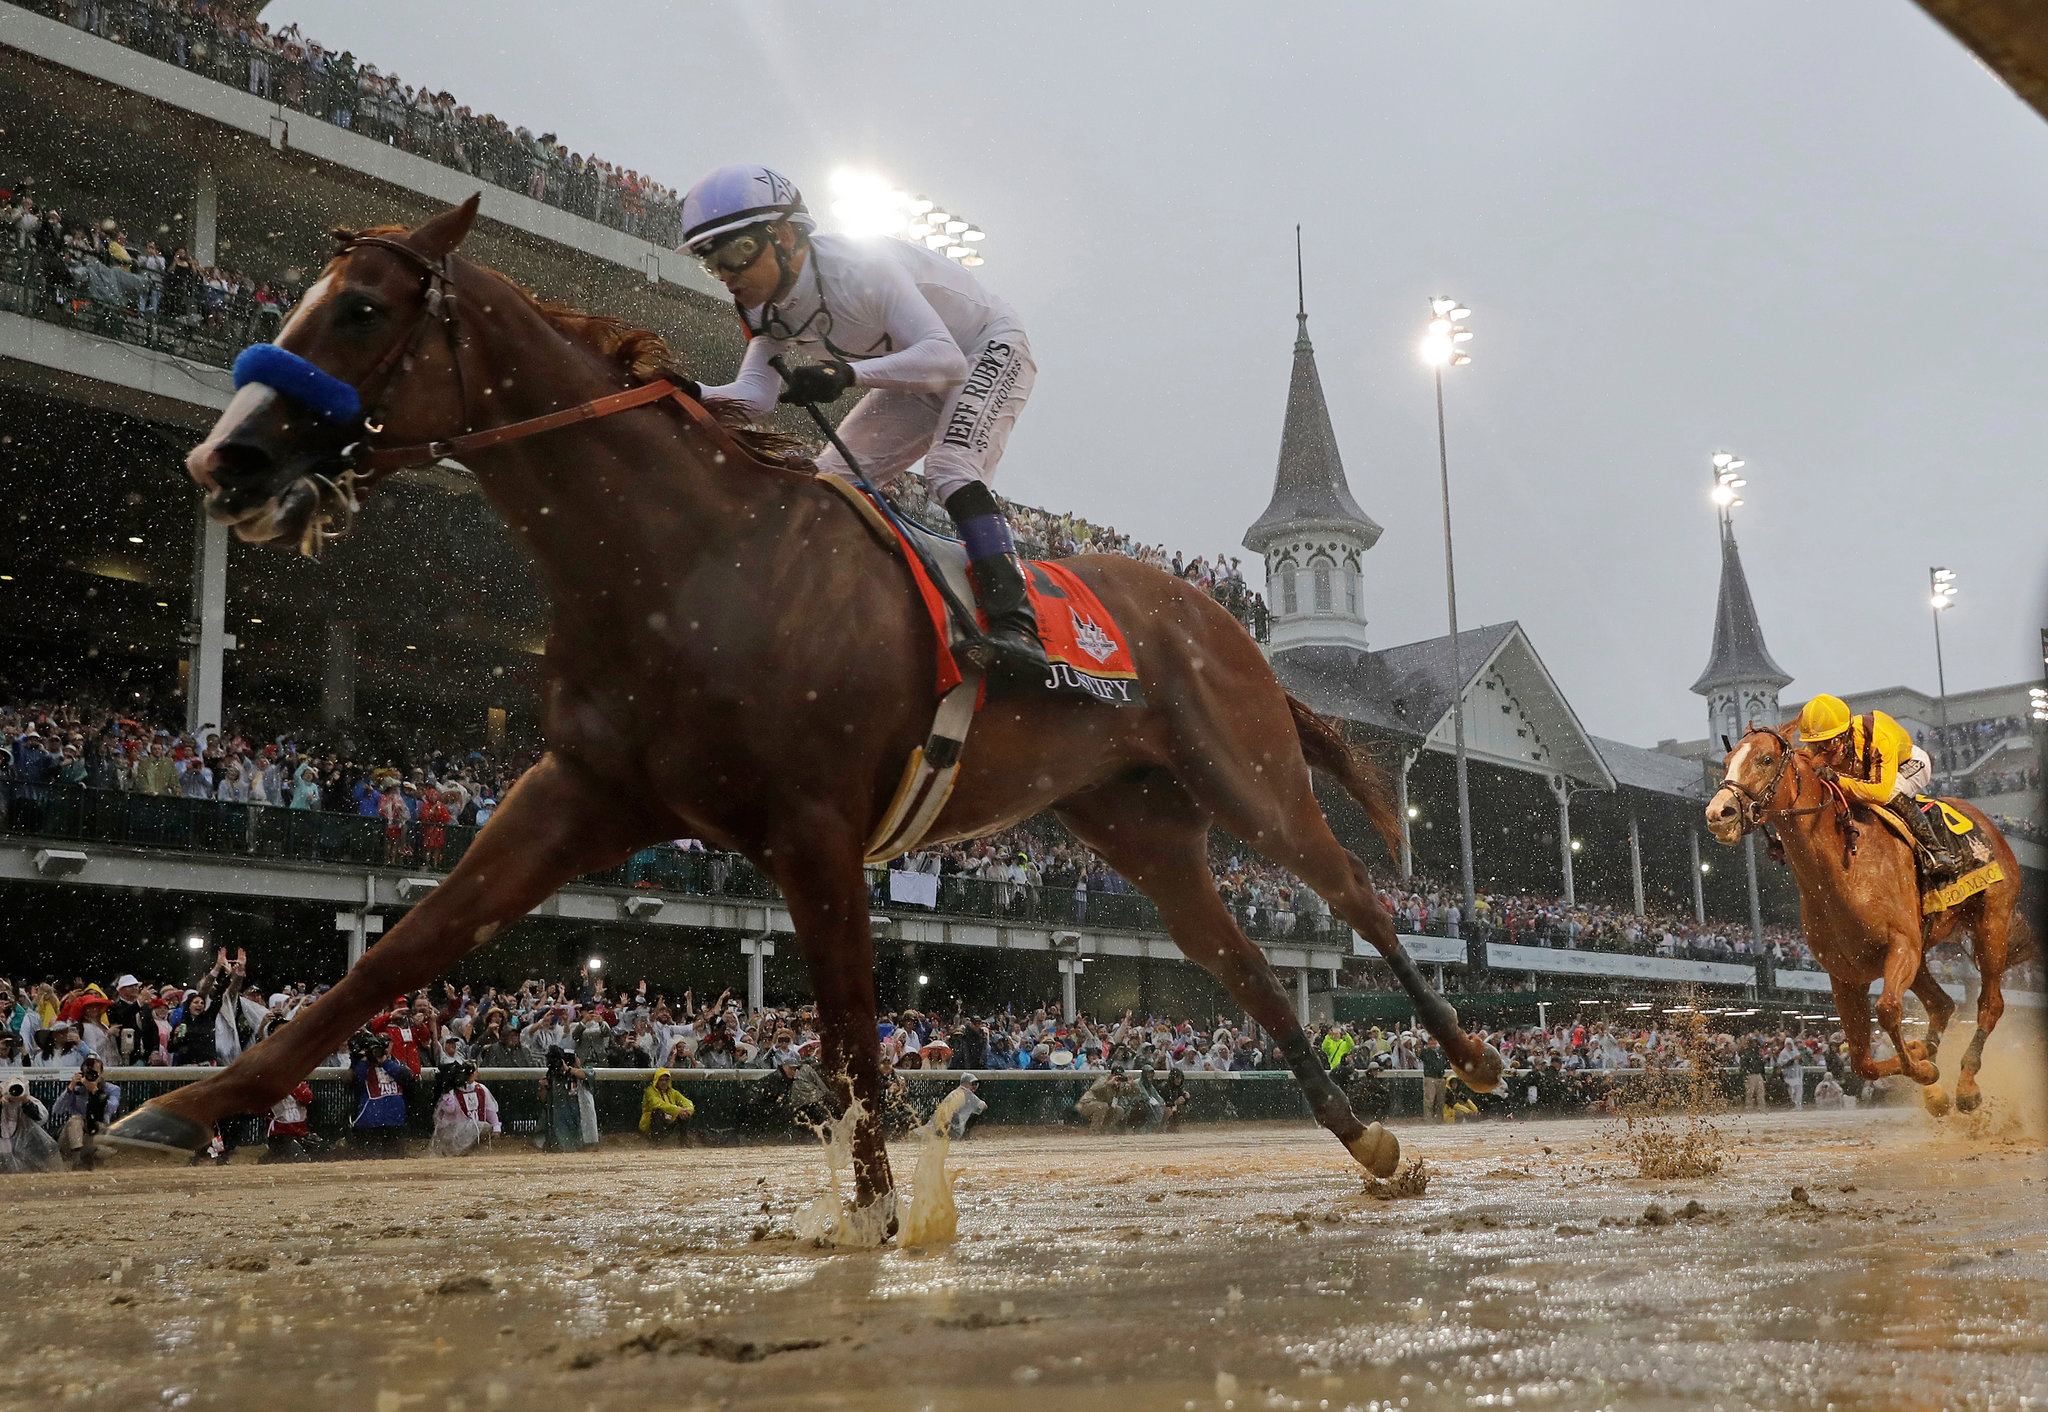 Justify winning the Kentucky Derby 2018 in the slop, before going on to win all three races in the American Triple Crown